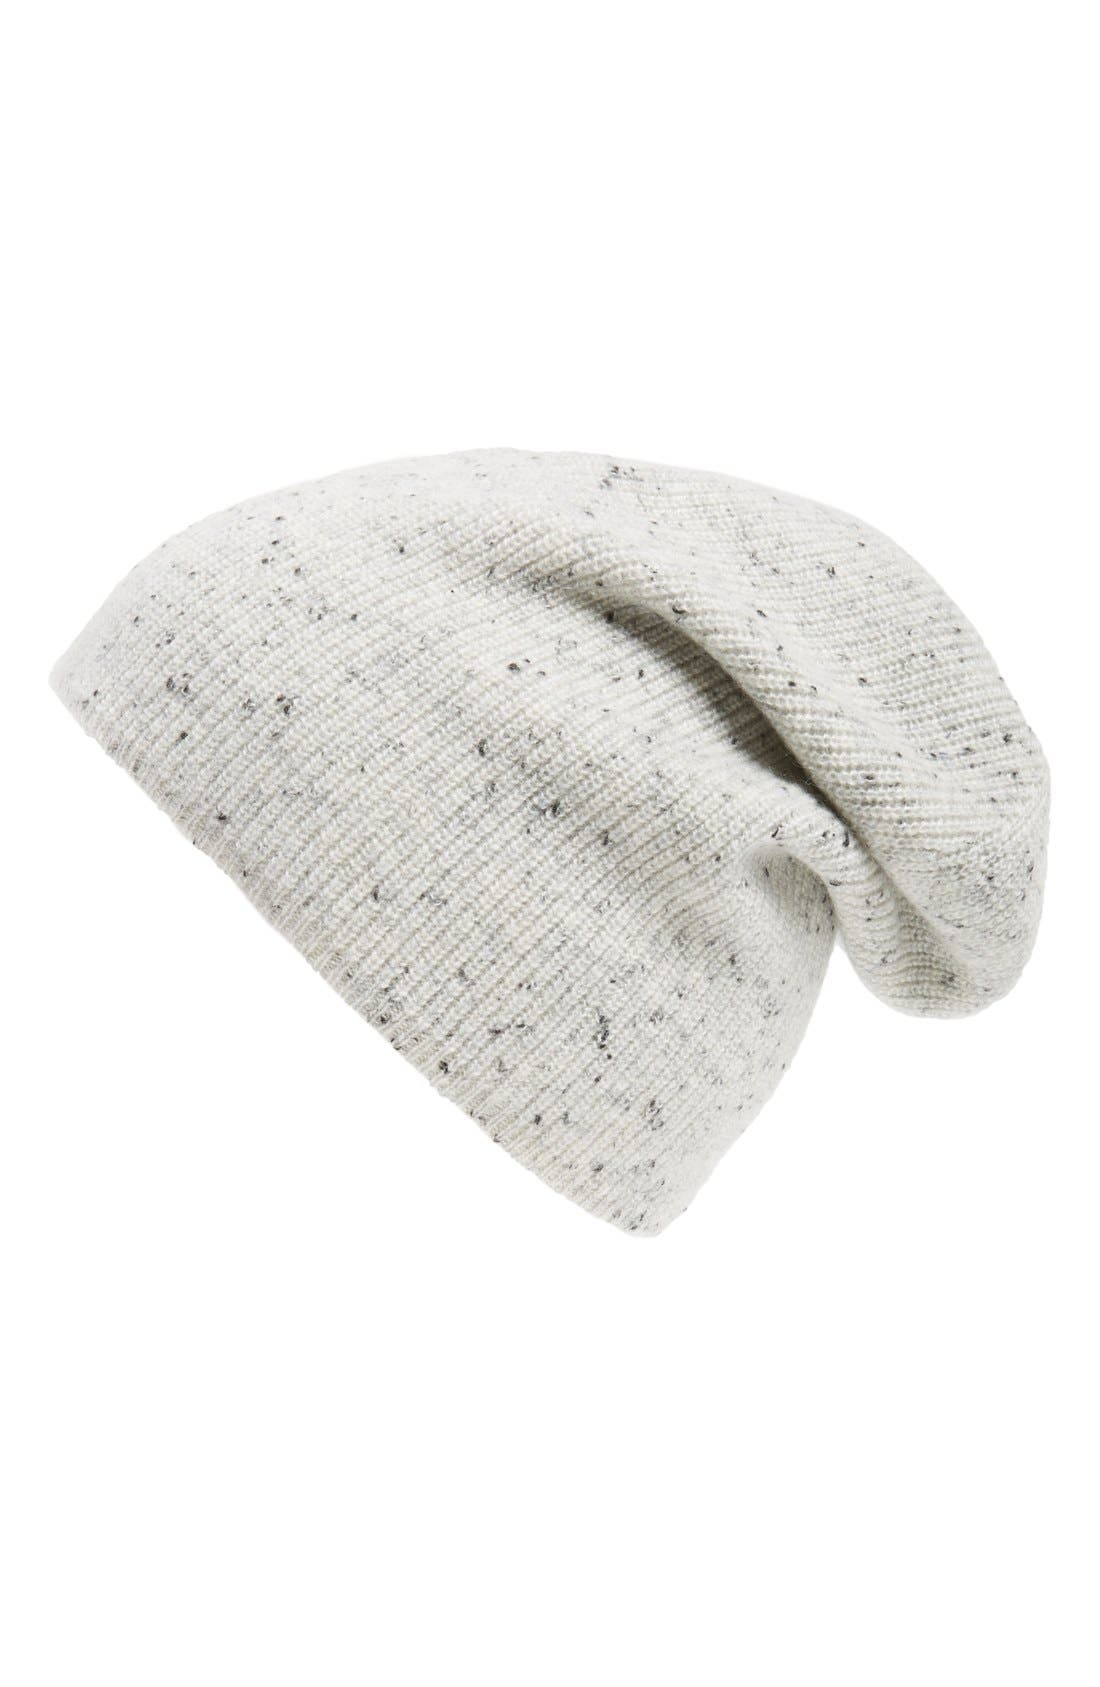 Alternate Image 1 Selected - rag & bone 'Catherine' Cashmere Slouch Beanie